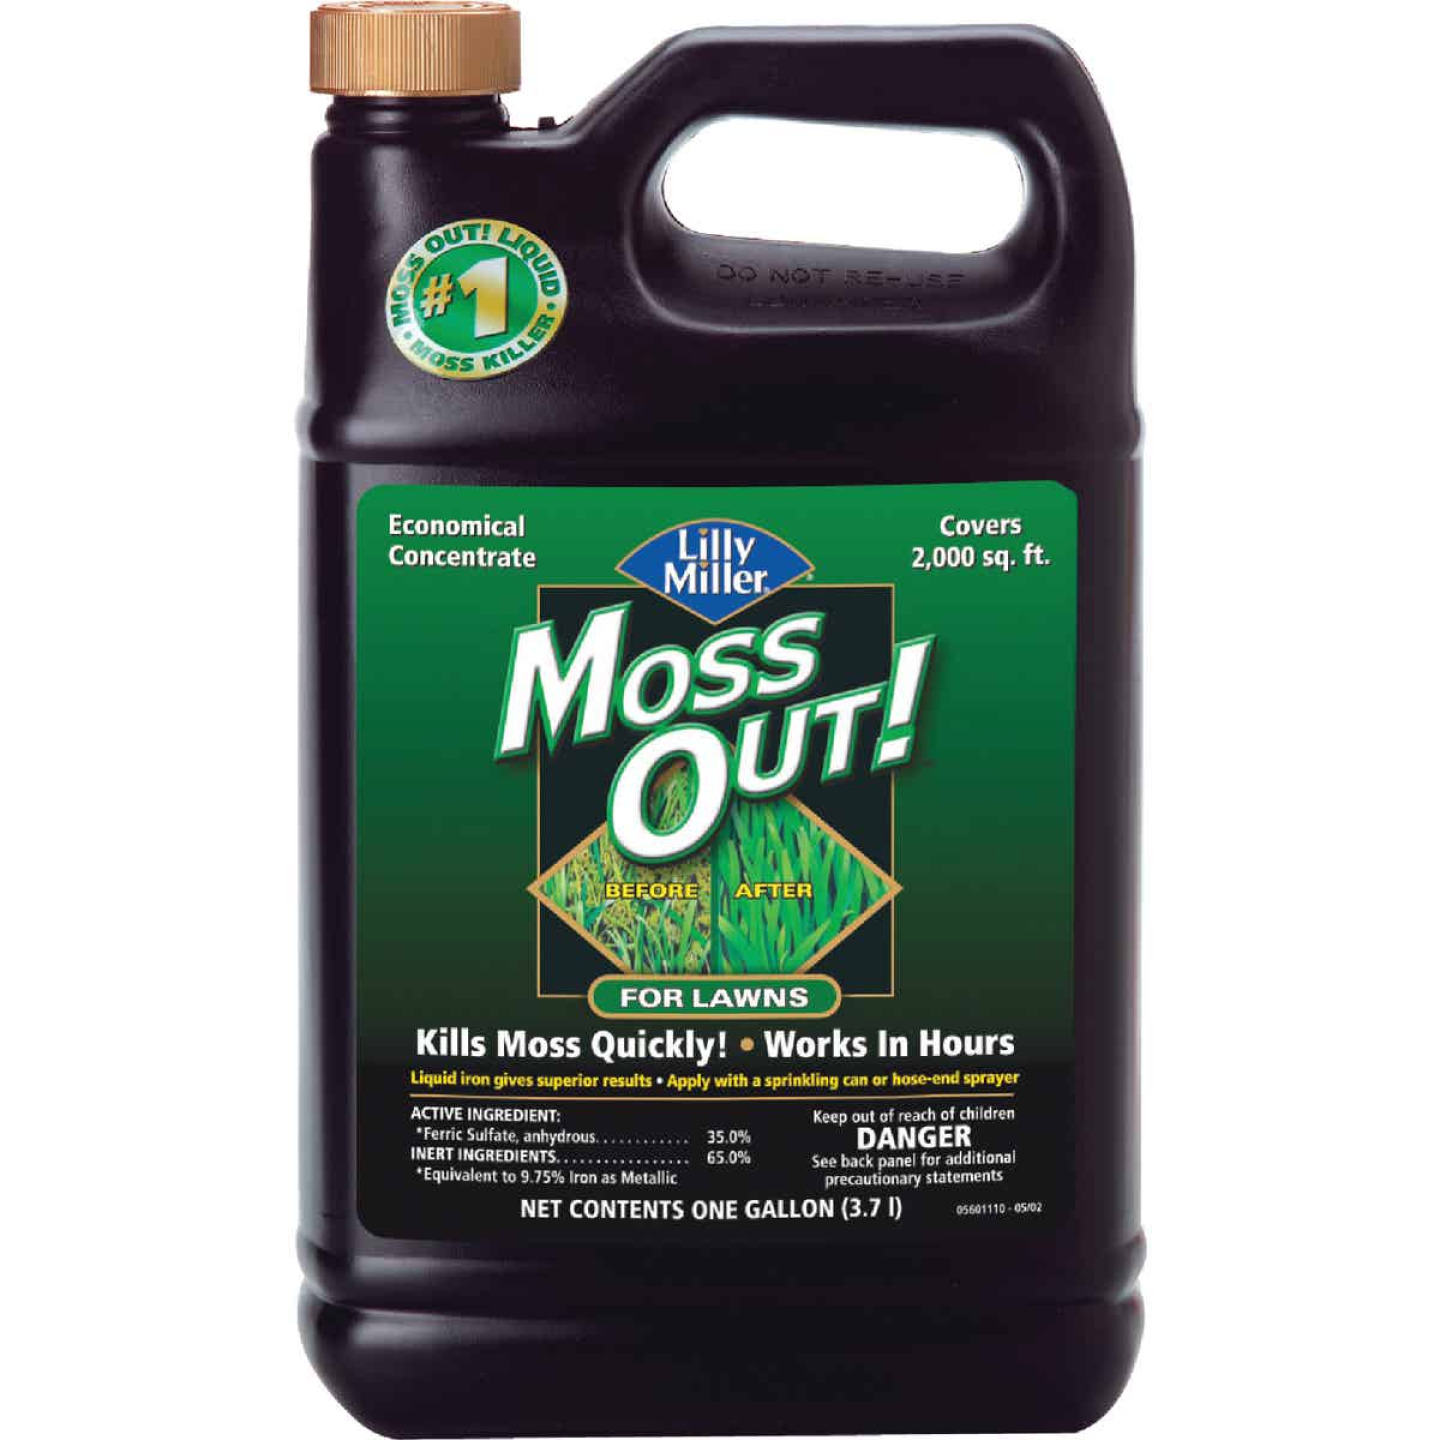 Lilly Miller MOSS OUT! 1 Gal. Concentrate Moss & Algae Killer Image 1